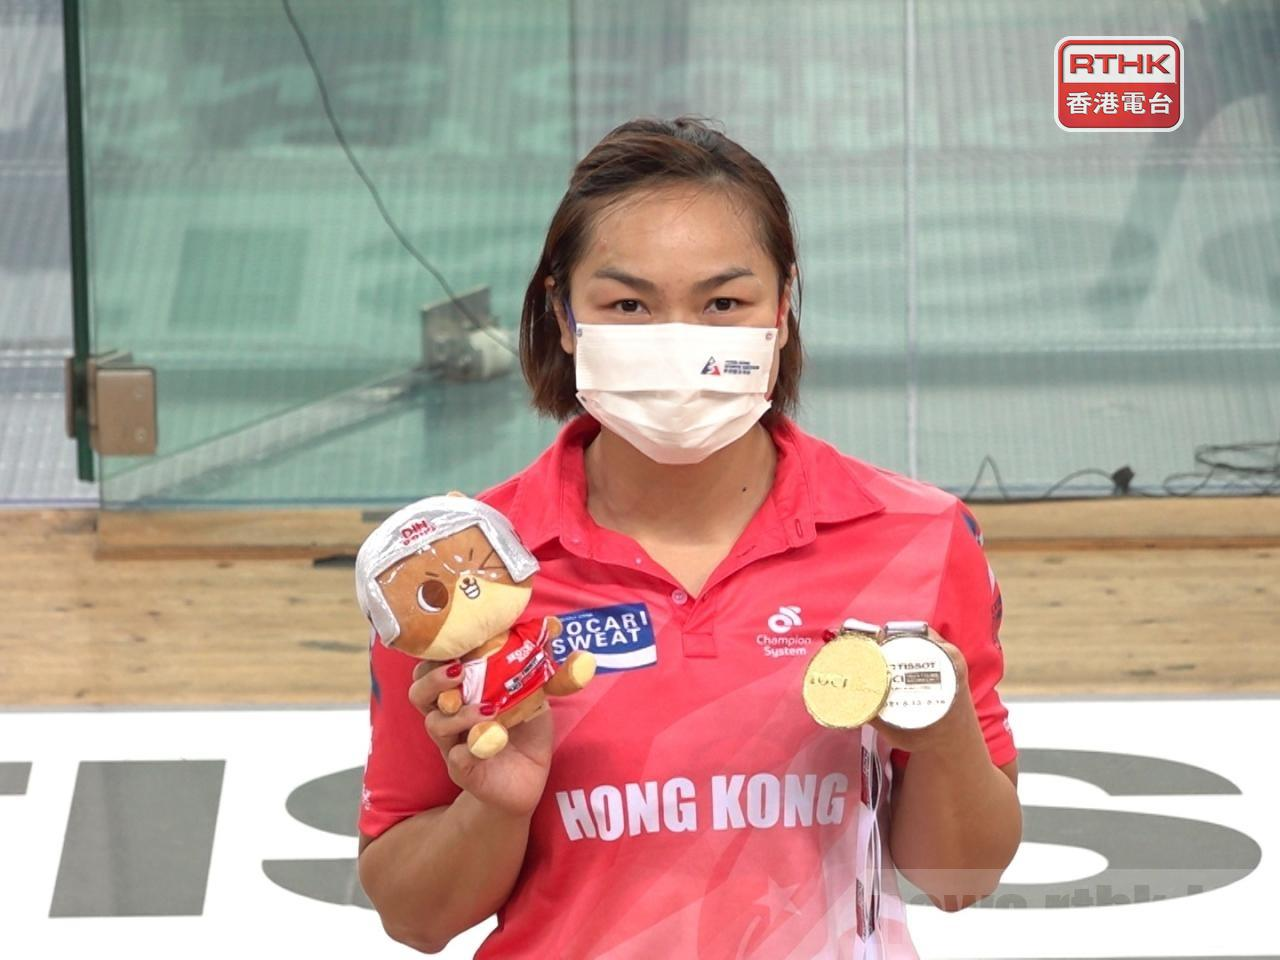 Sarah Lee needed a strong performance in the repechage race to make it to the quarterfinals. File photo: RTHK